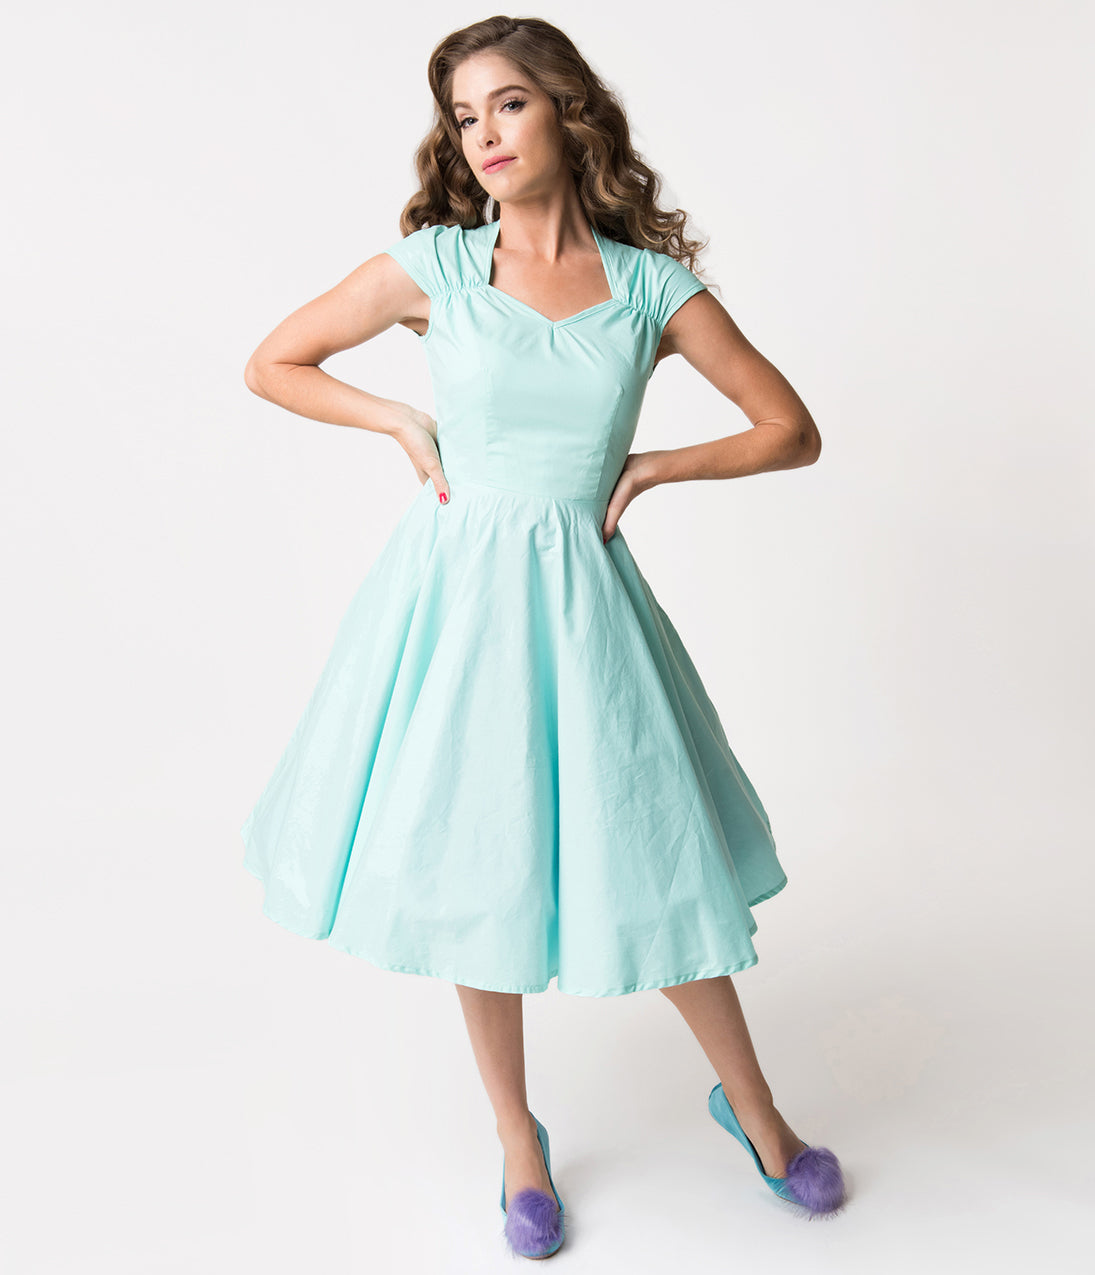 1950s Housewife Dress | 50s Day Dresses 1950S Style Mint Blue Cotton Bowy Swing Dress $46.00 AT vintagedancer.com